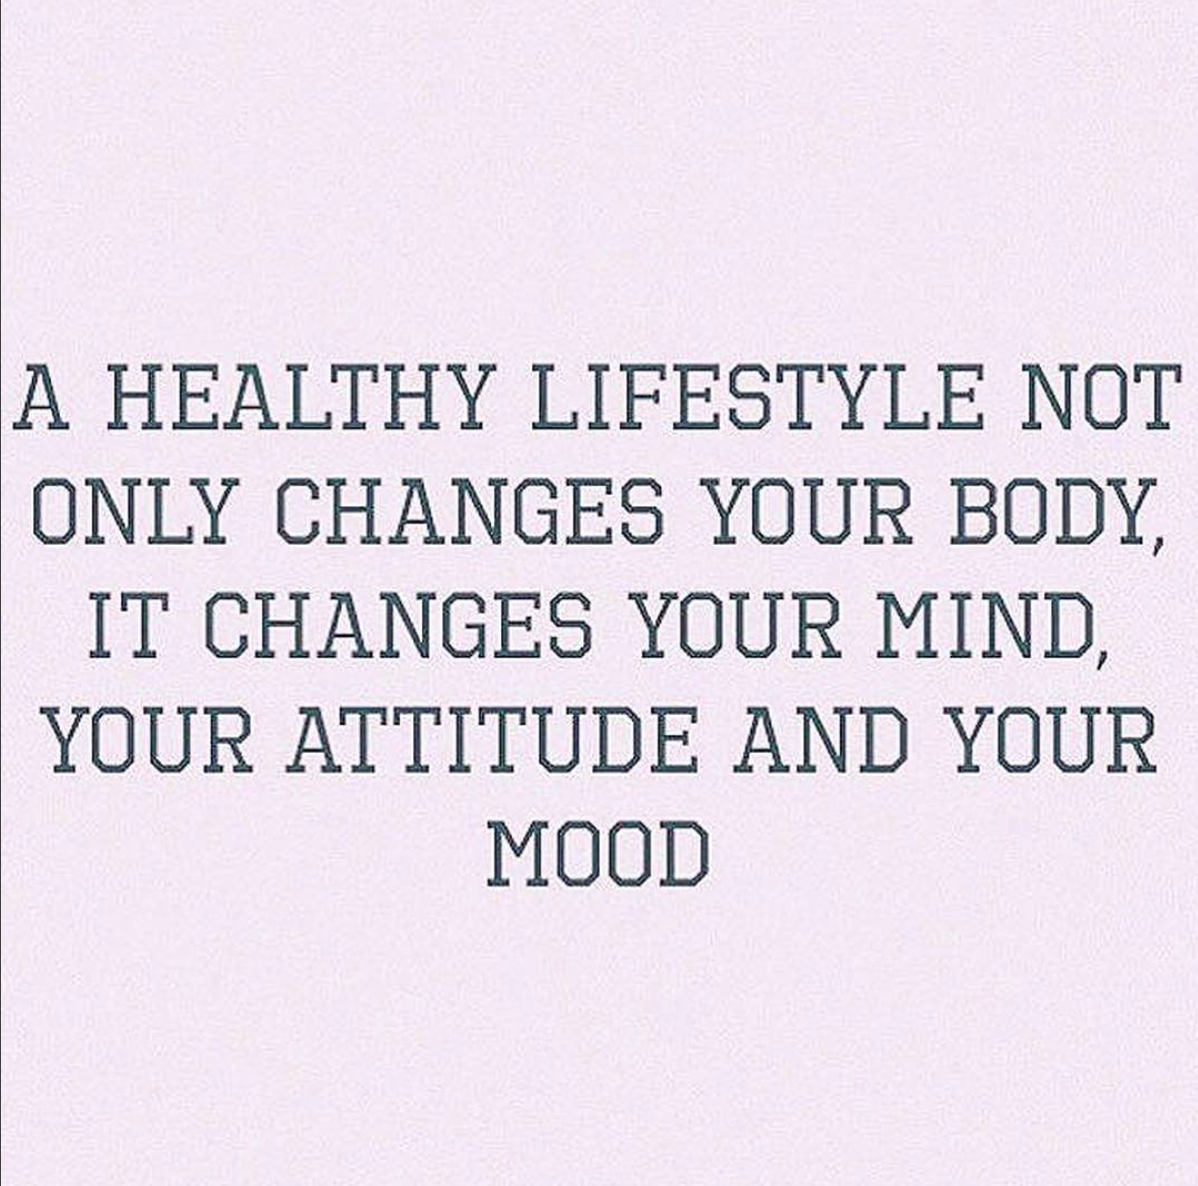 a healthy lifestyle changes everything type a